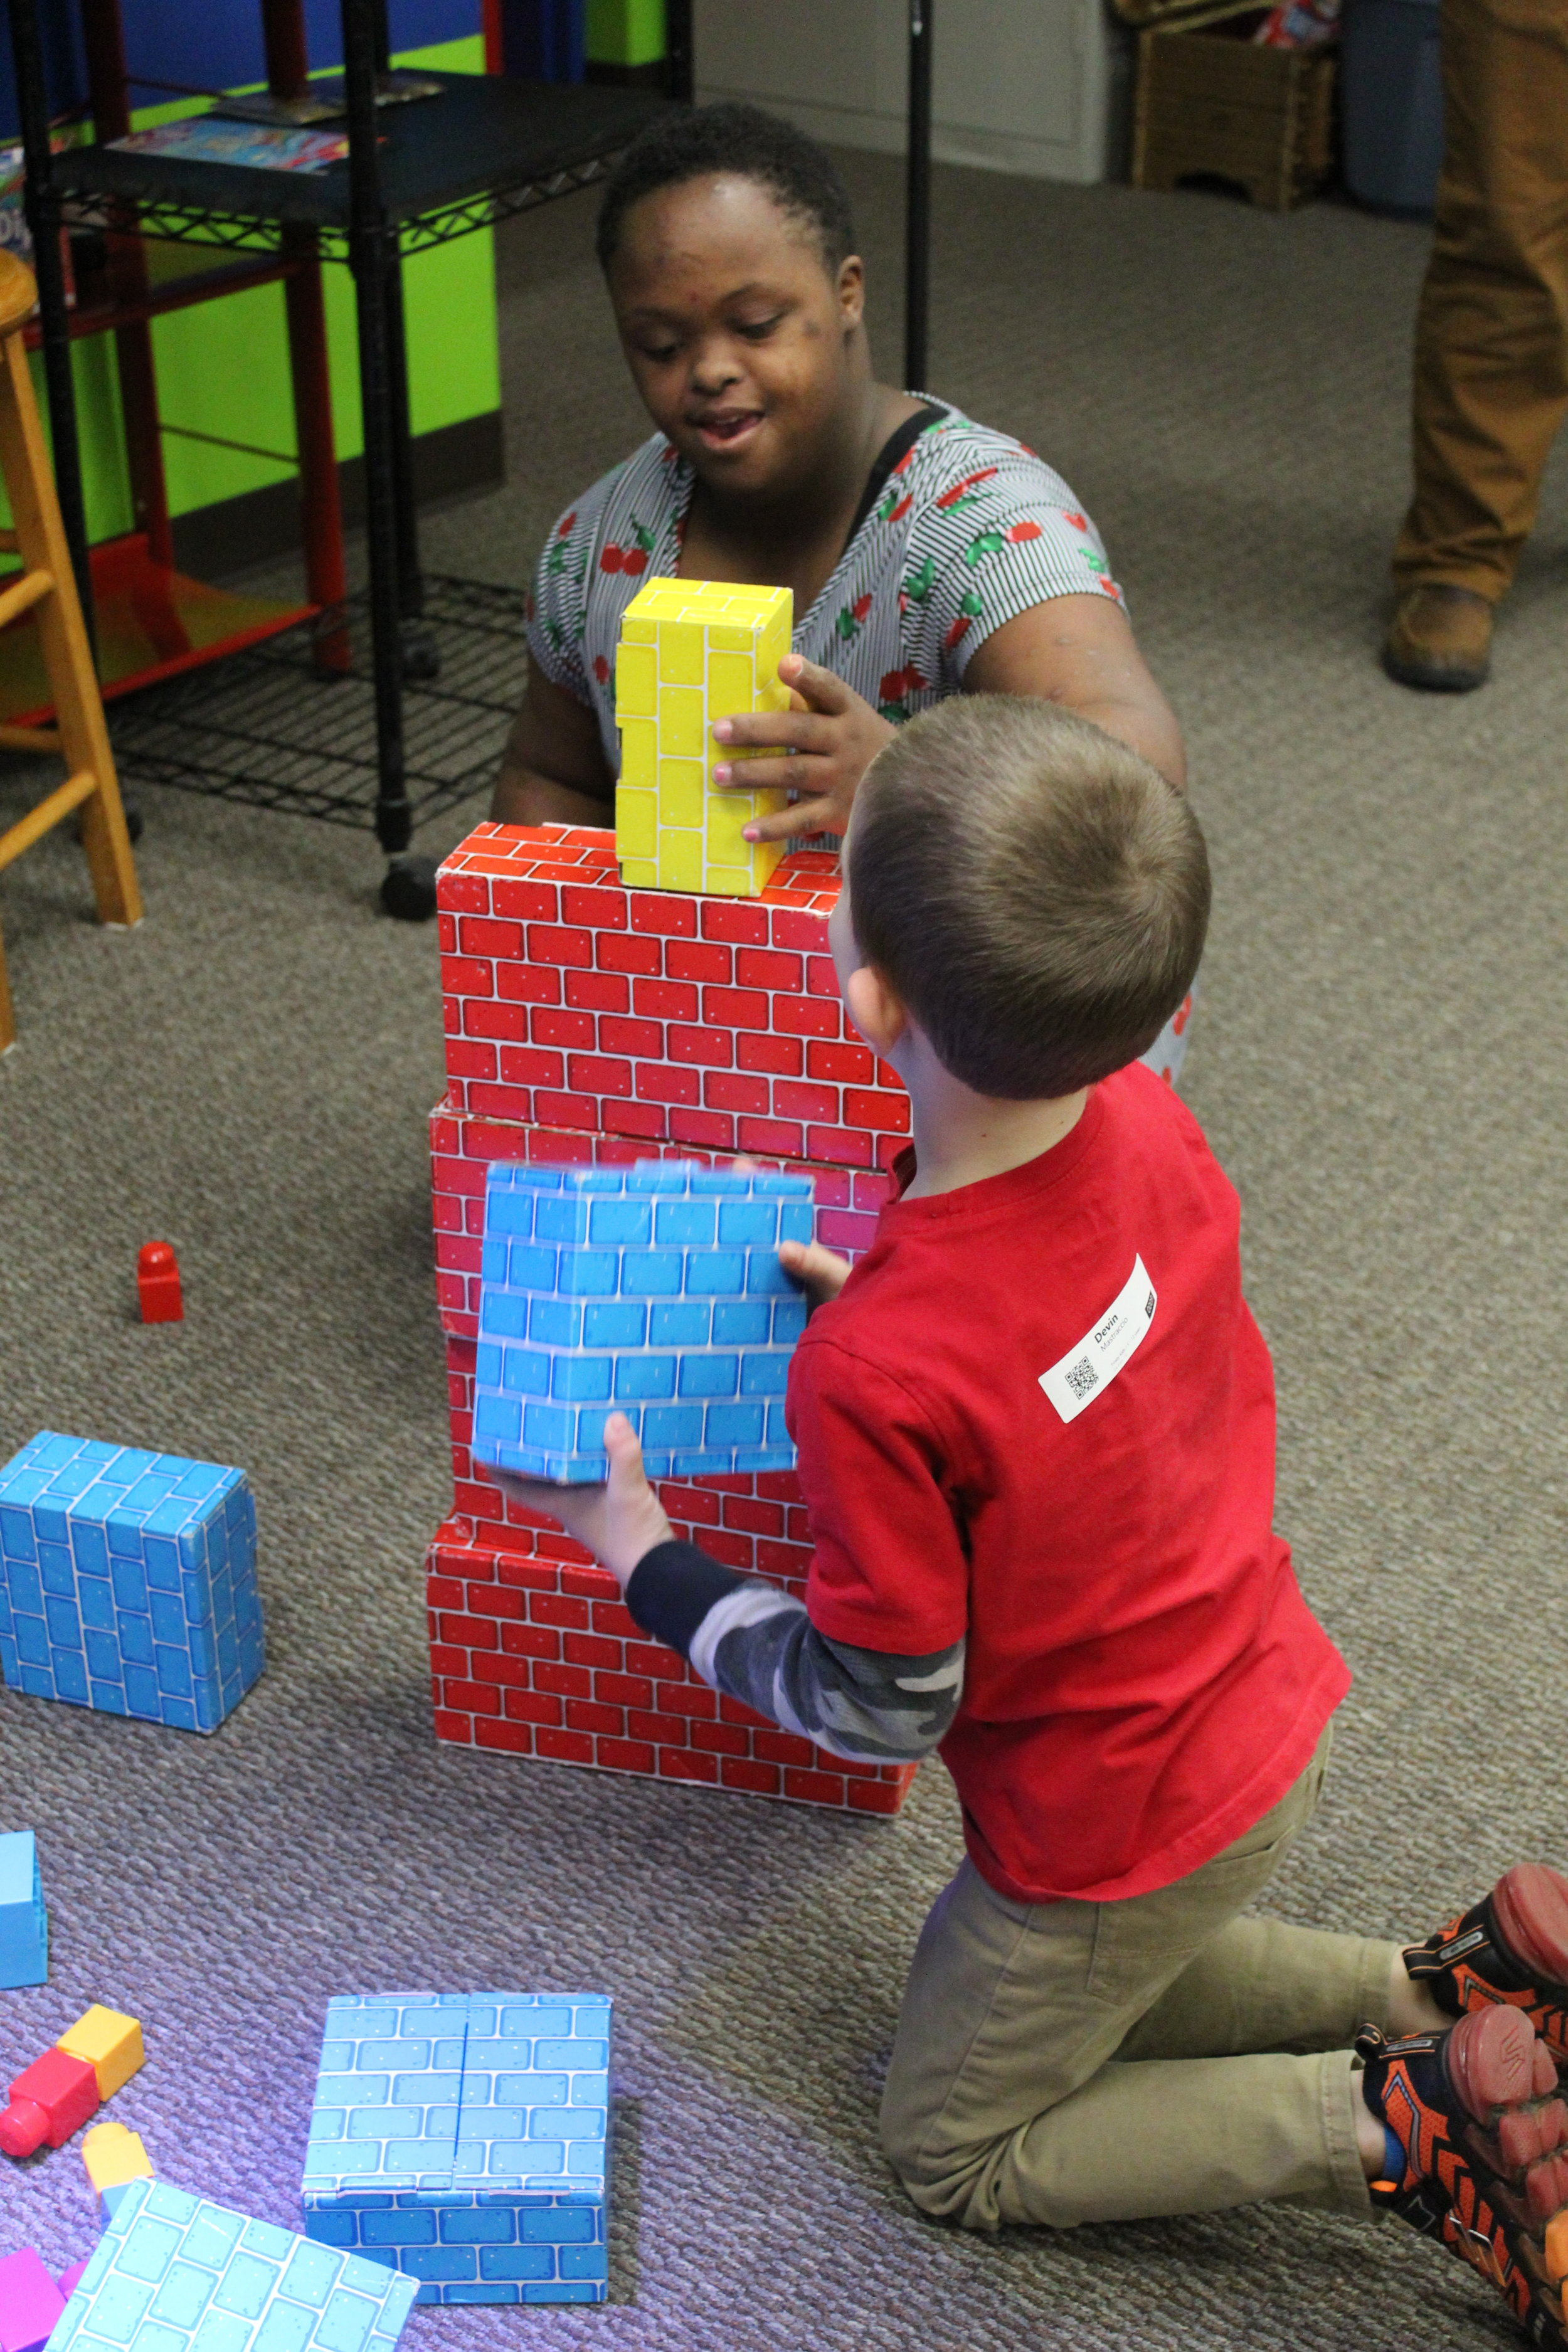 In Trinity Kids, the children's pastors Brad and LeeAnn, use object lessons and activities to assist teaching the students about different lessons throughout the Bible. Here, Tia Carlisle and Devin Mastraccio attempt to build the tallest structure using the given blocks. They learned how important it is to build thier life on a foundation of solid ground in Jesus.